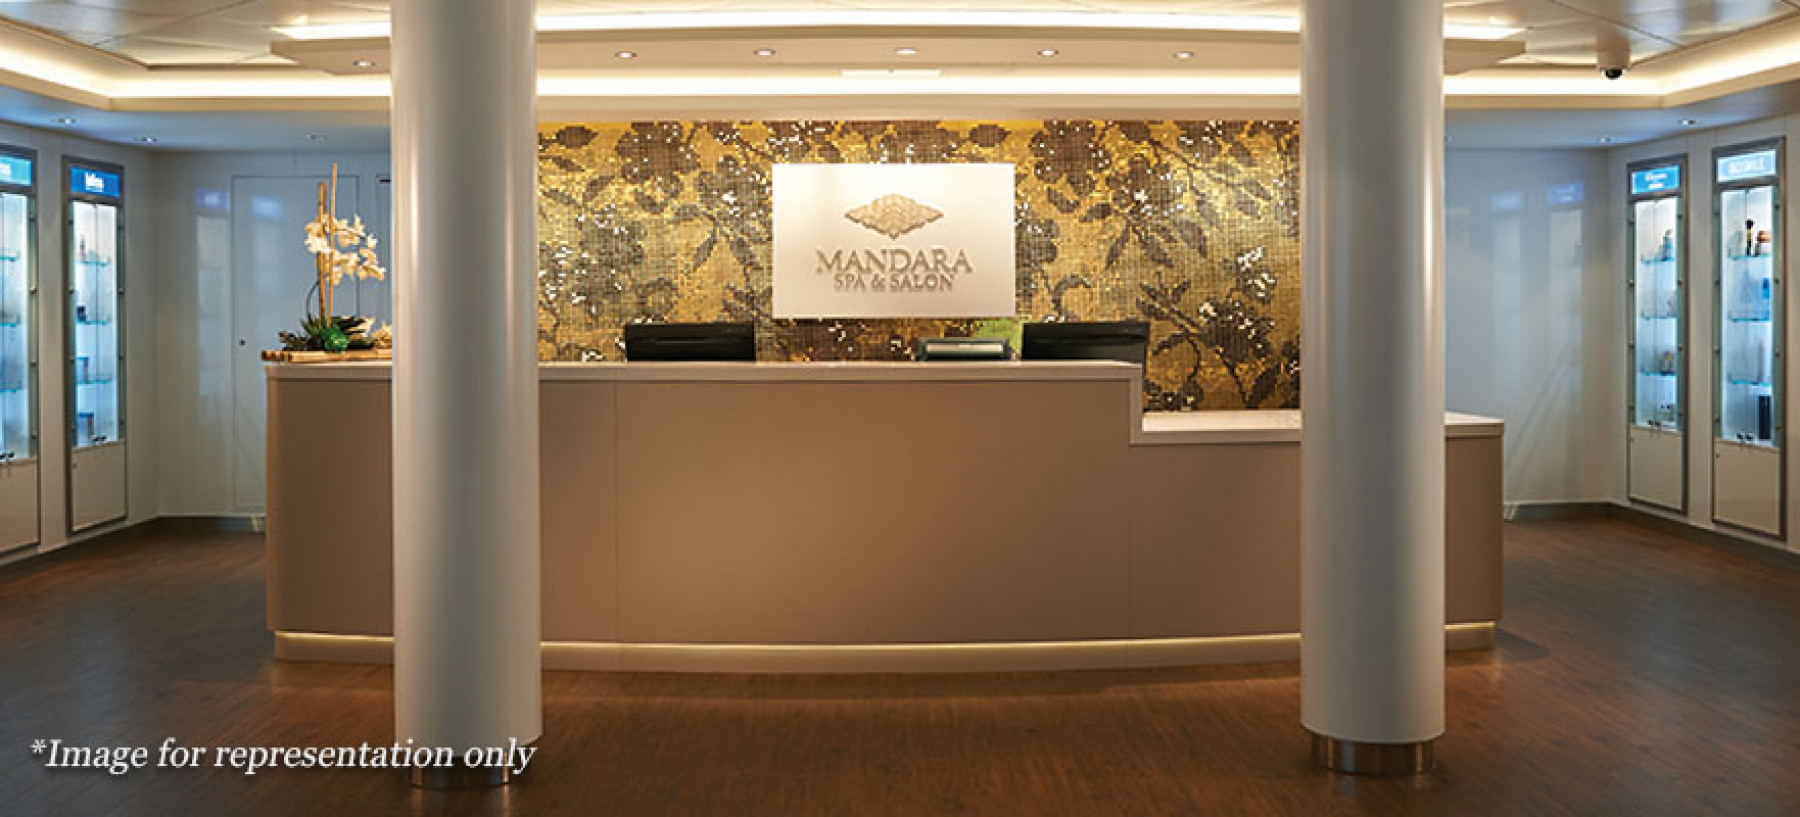 Norwegian Cruise Lines Norwegian Joy Interior Mandara Spa.jpg